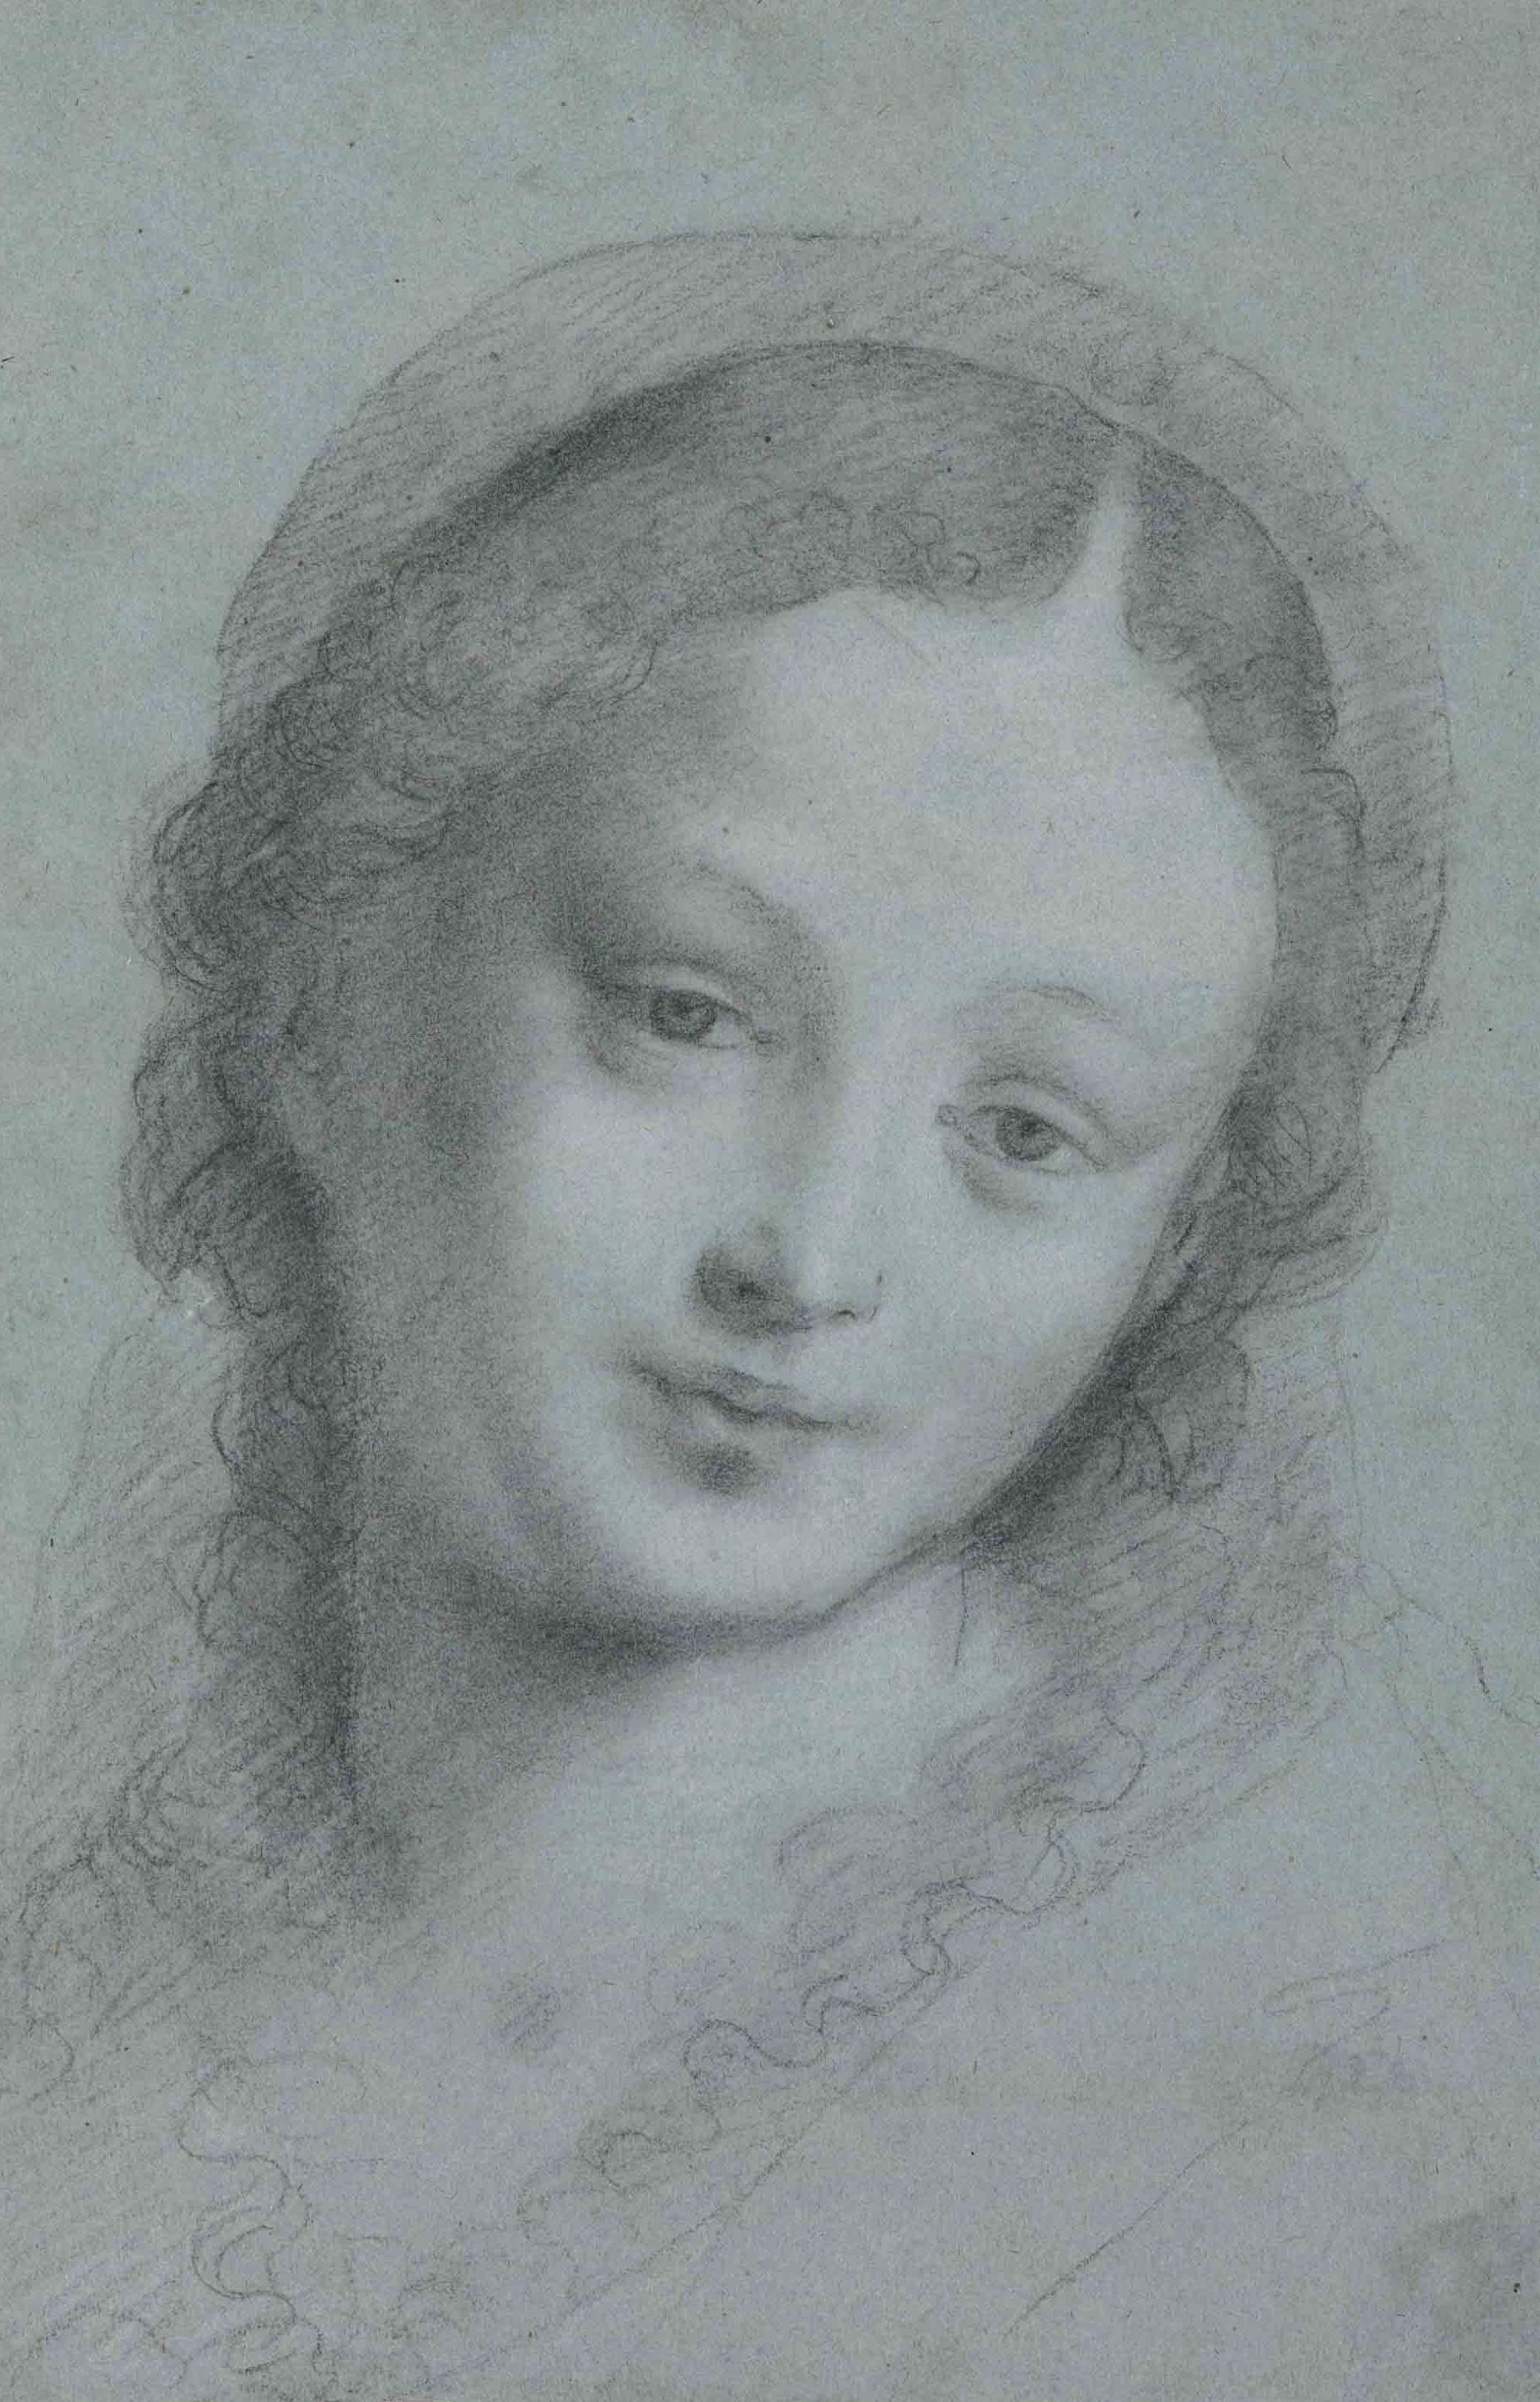 Fig. 2. Bernardino Lanino,  The Head of the Virgin , black and white chalk on blue paper, 12 ¾ x 8 5/8 inches (32.4 x 22.1 cm), private collection, New York.